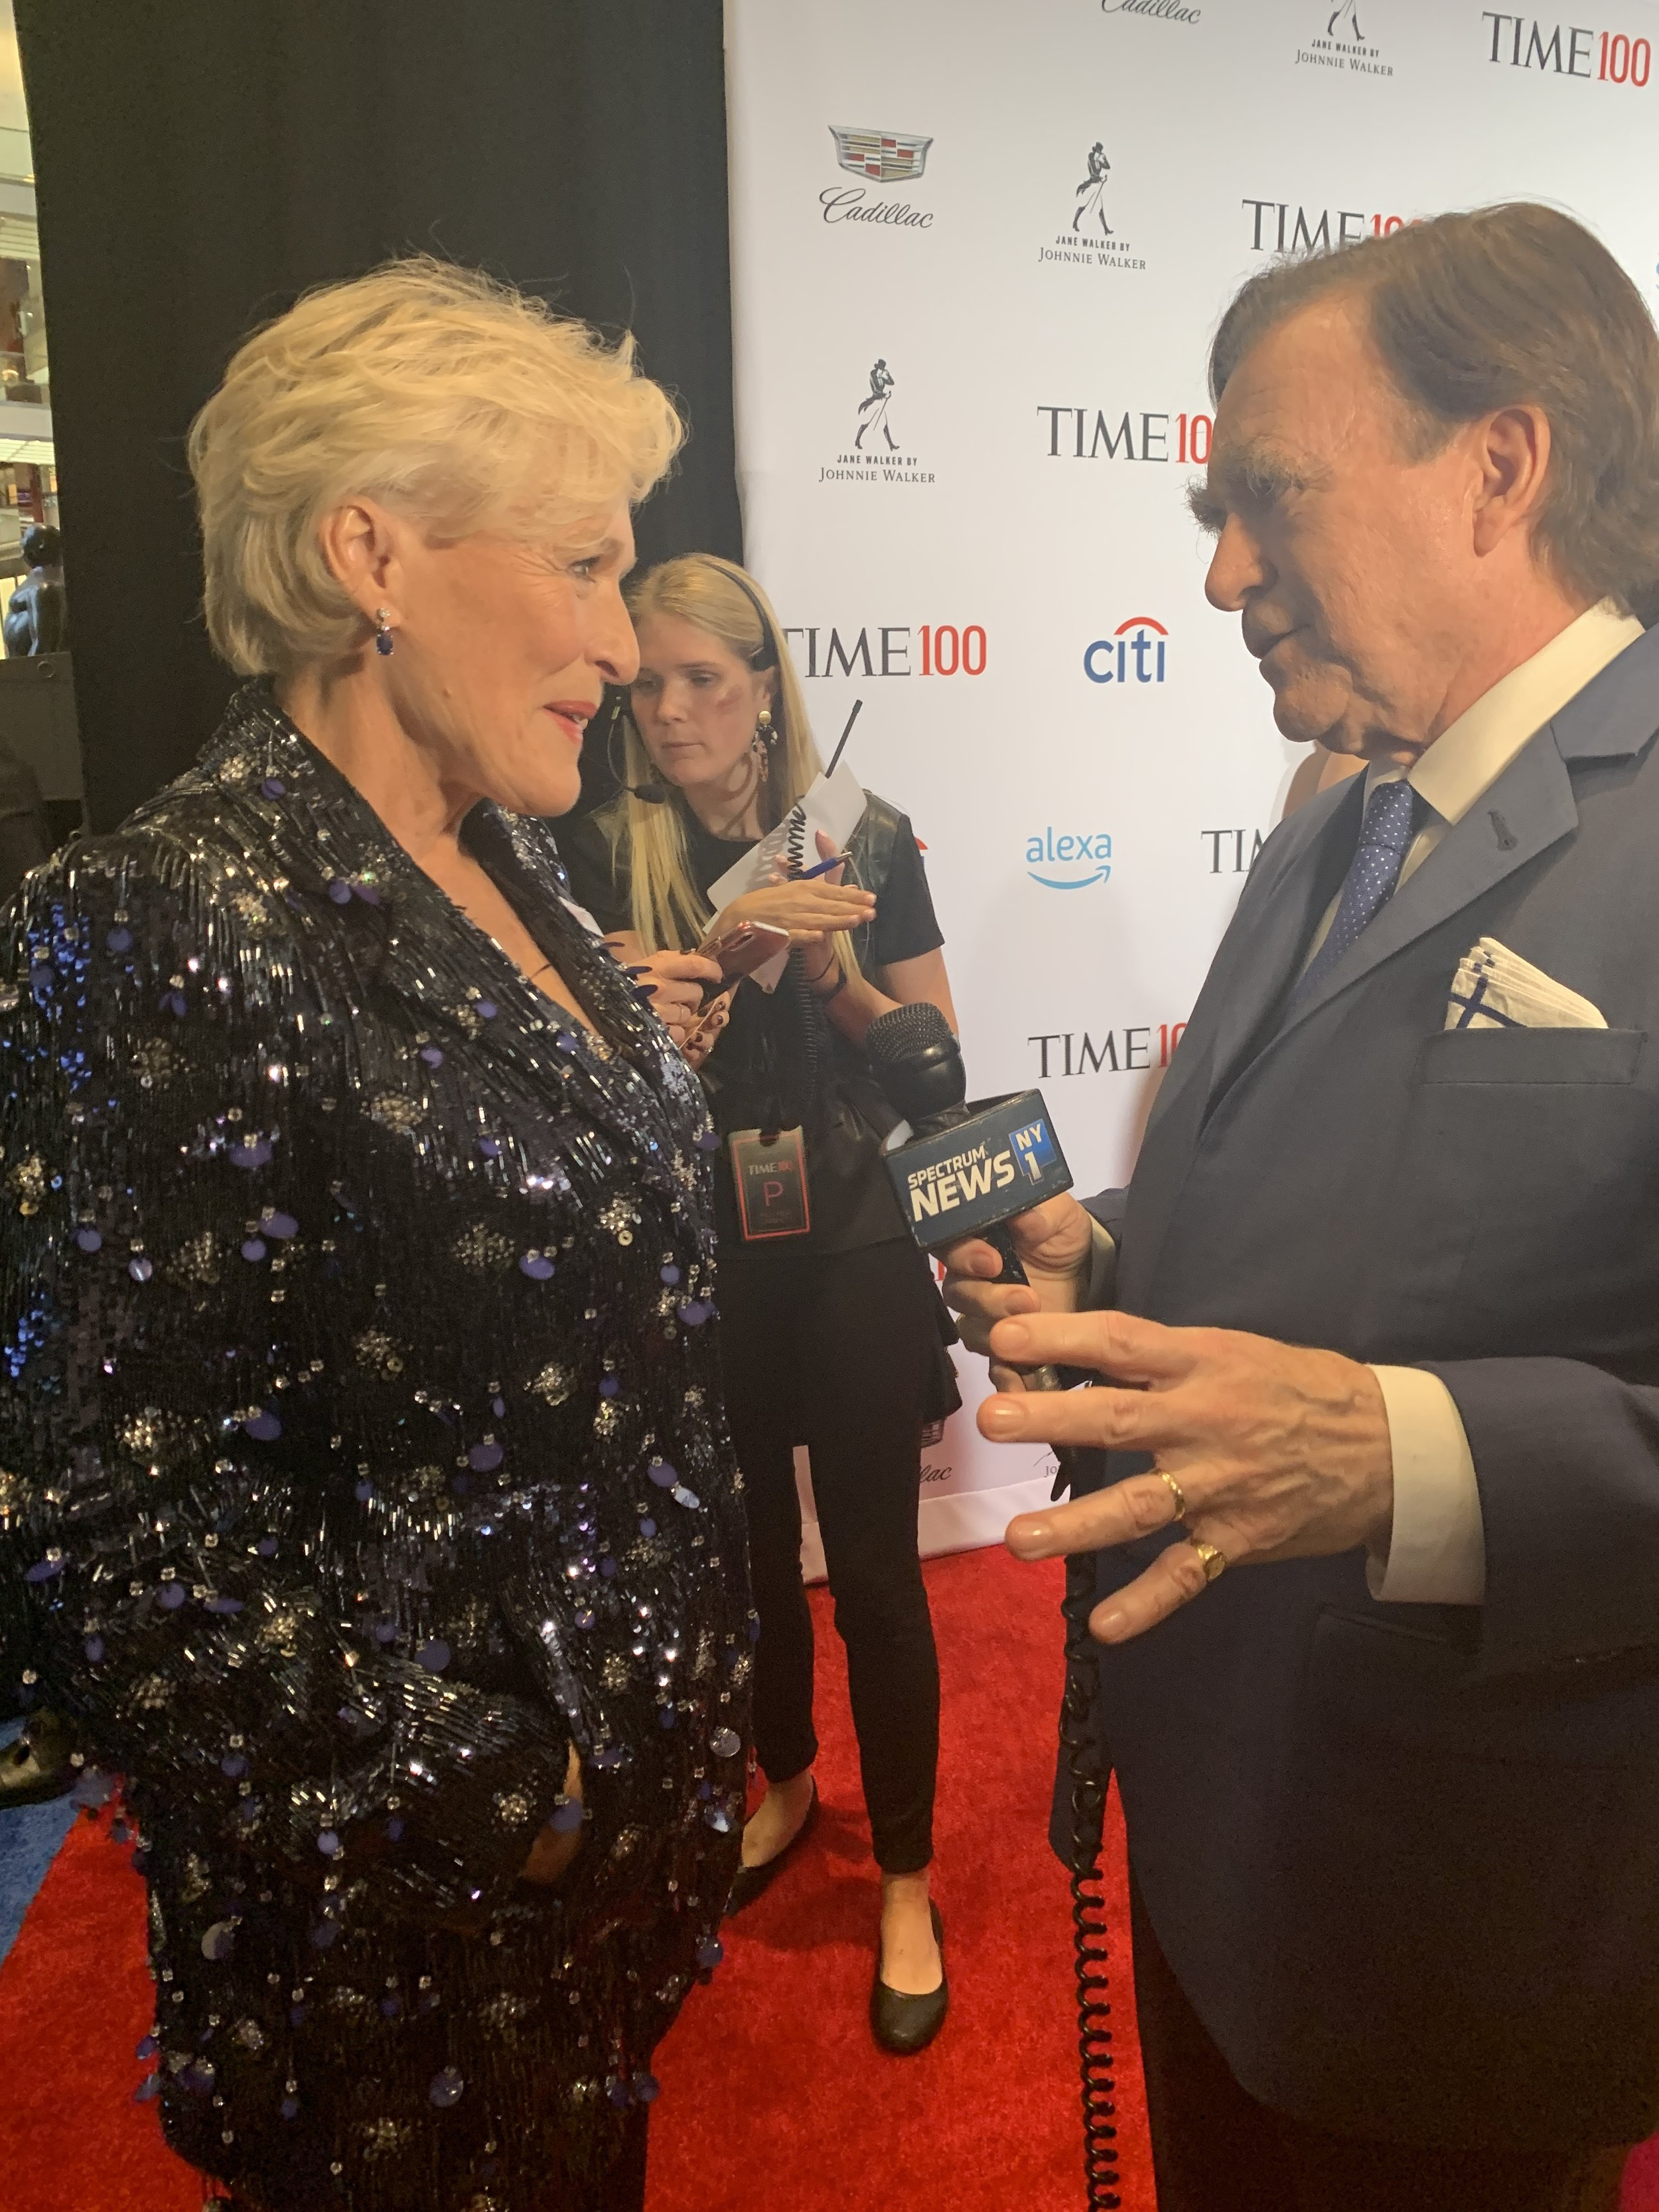 Celebrating the 100 most influential people… - George and his team attended the Time 100 Gala, honoring the 100 most influential people in the world. What an experience! George chats with past honoree and actress, Glenn Close.